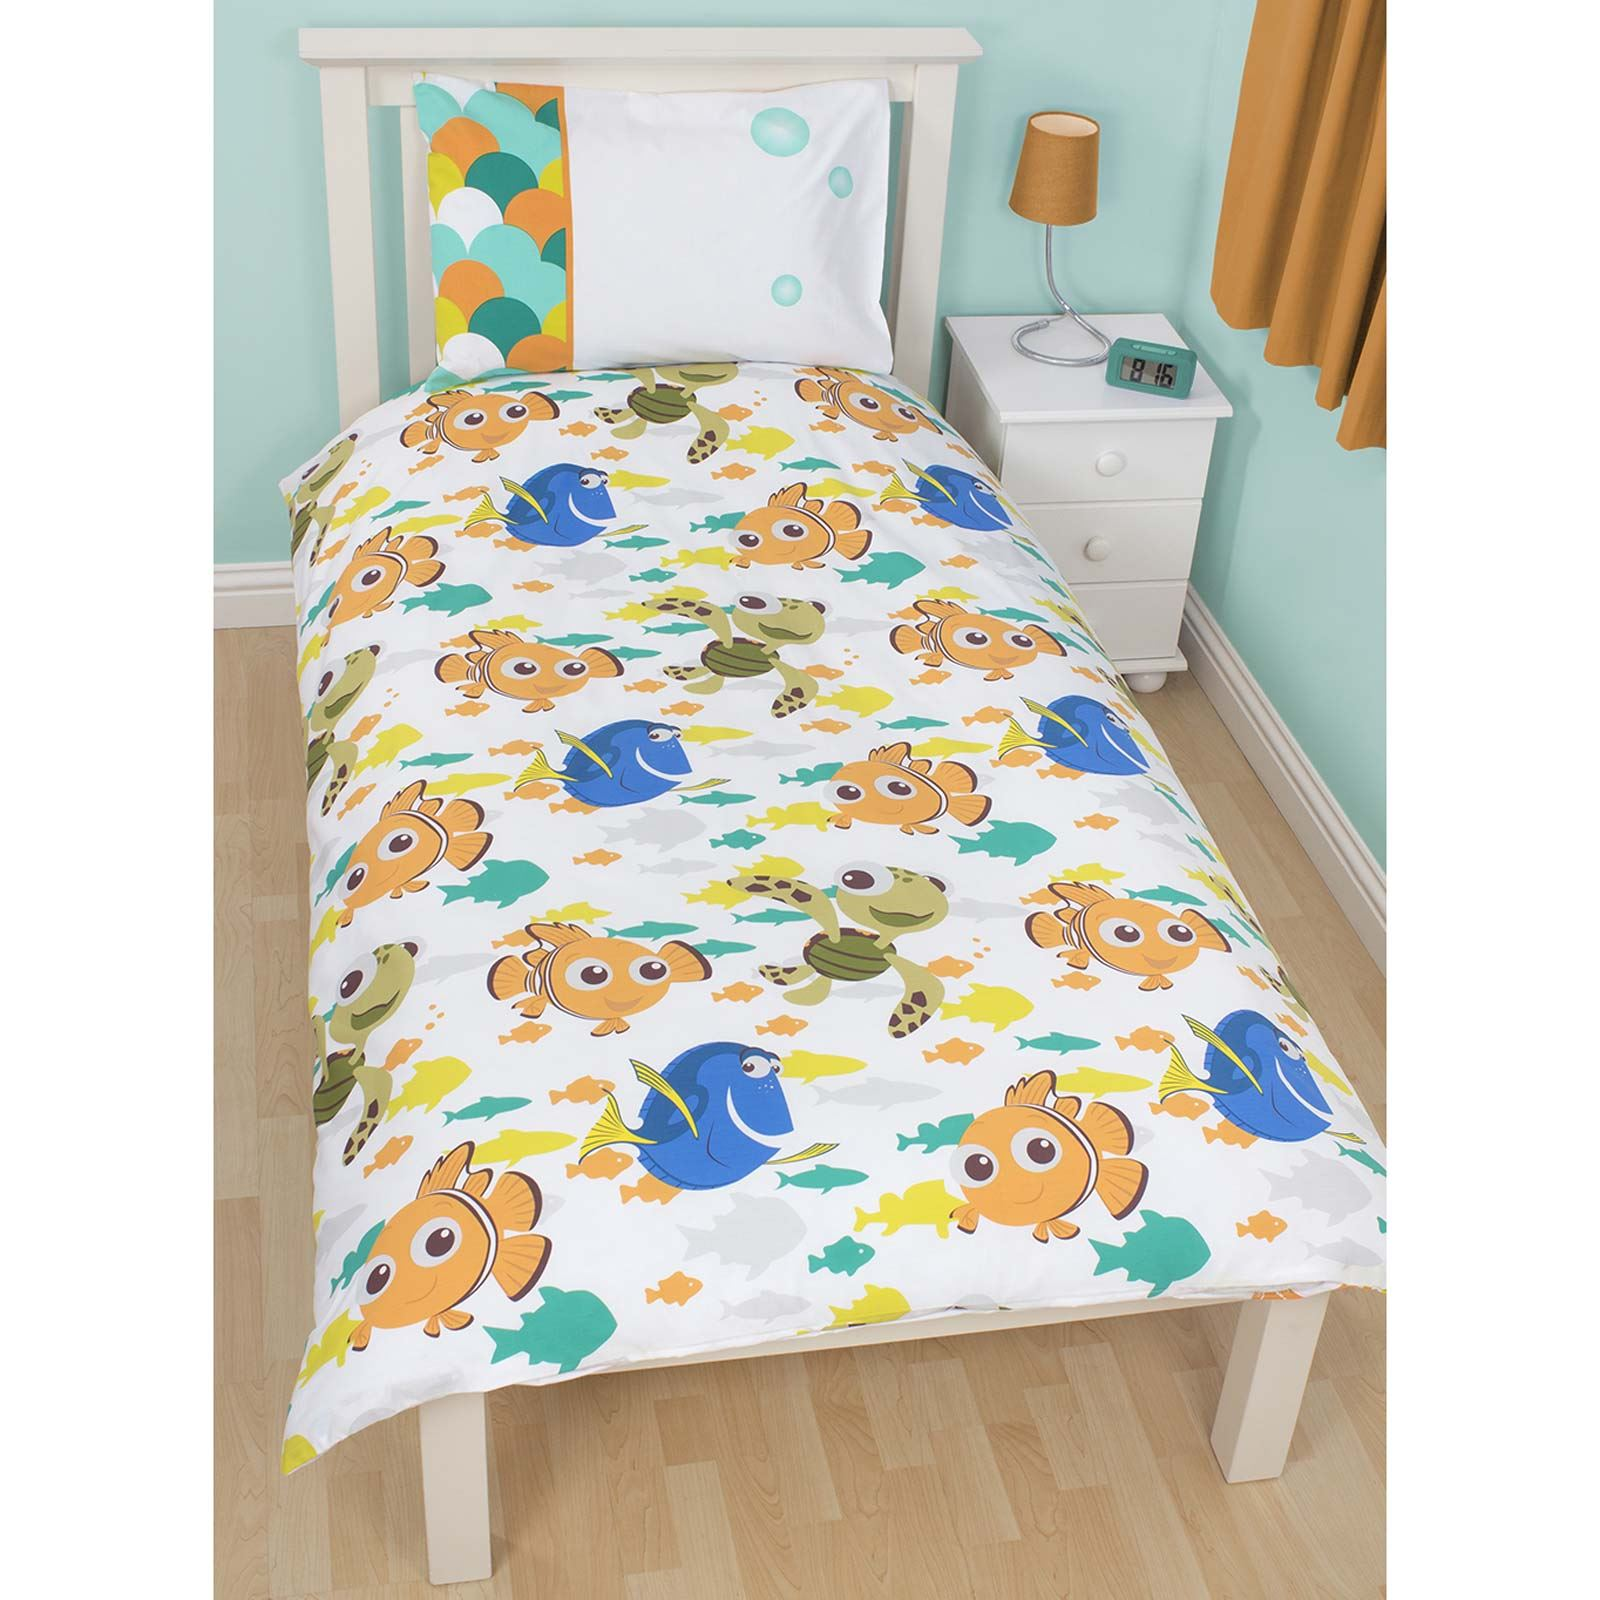 Details about disney finding nemo single duvet cover set 2 in 1 new